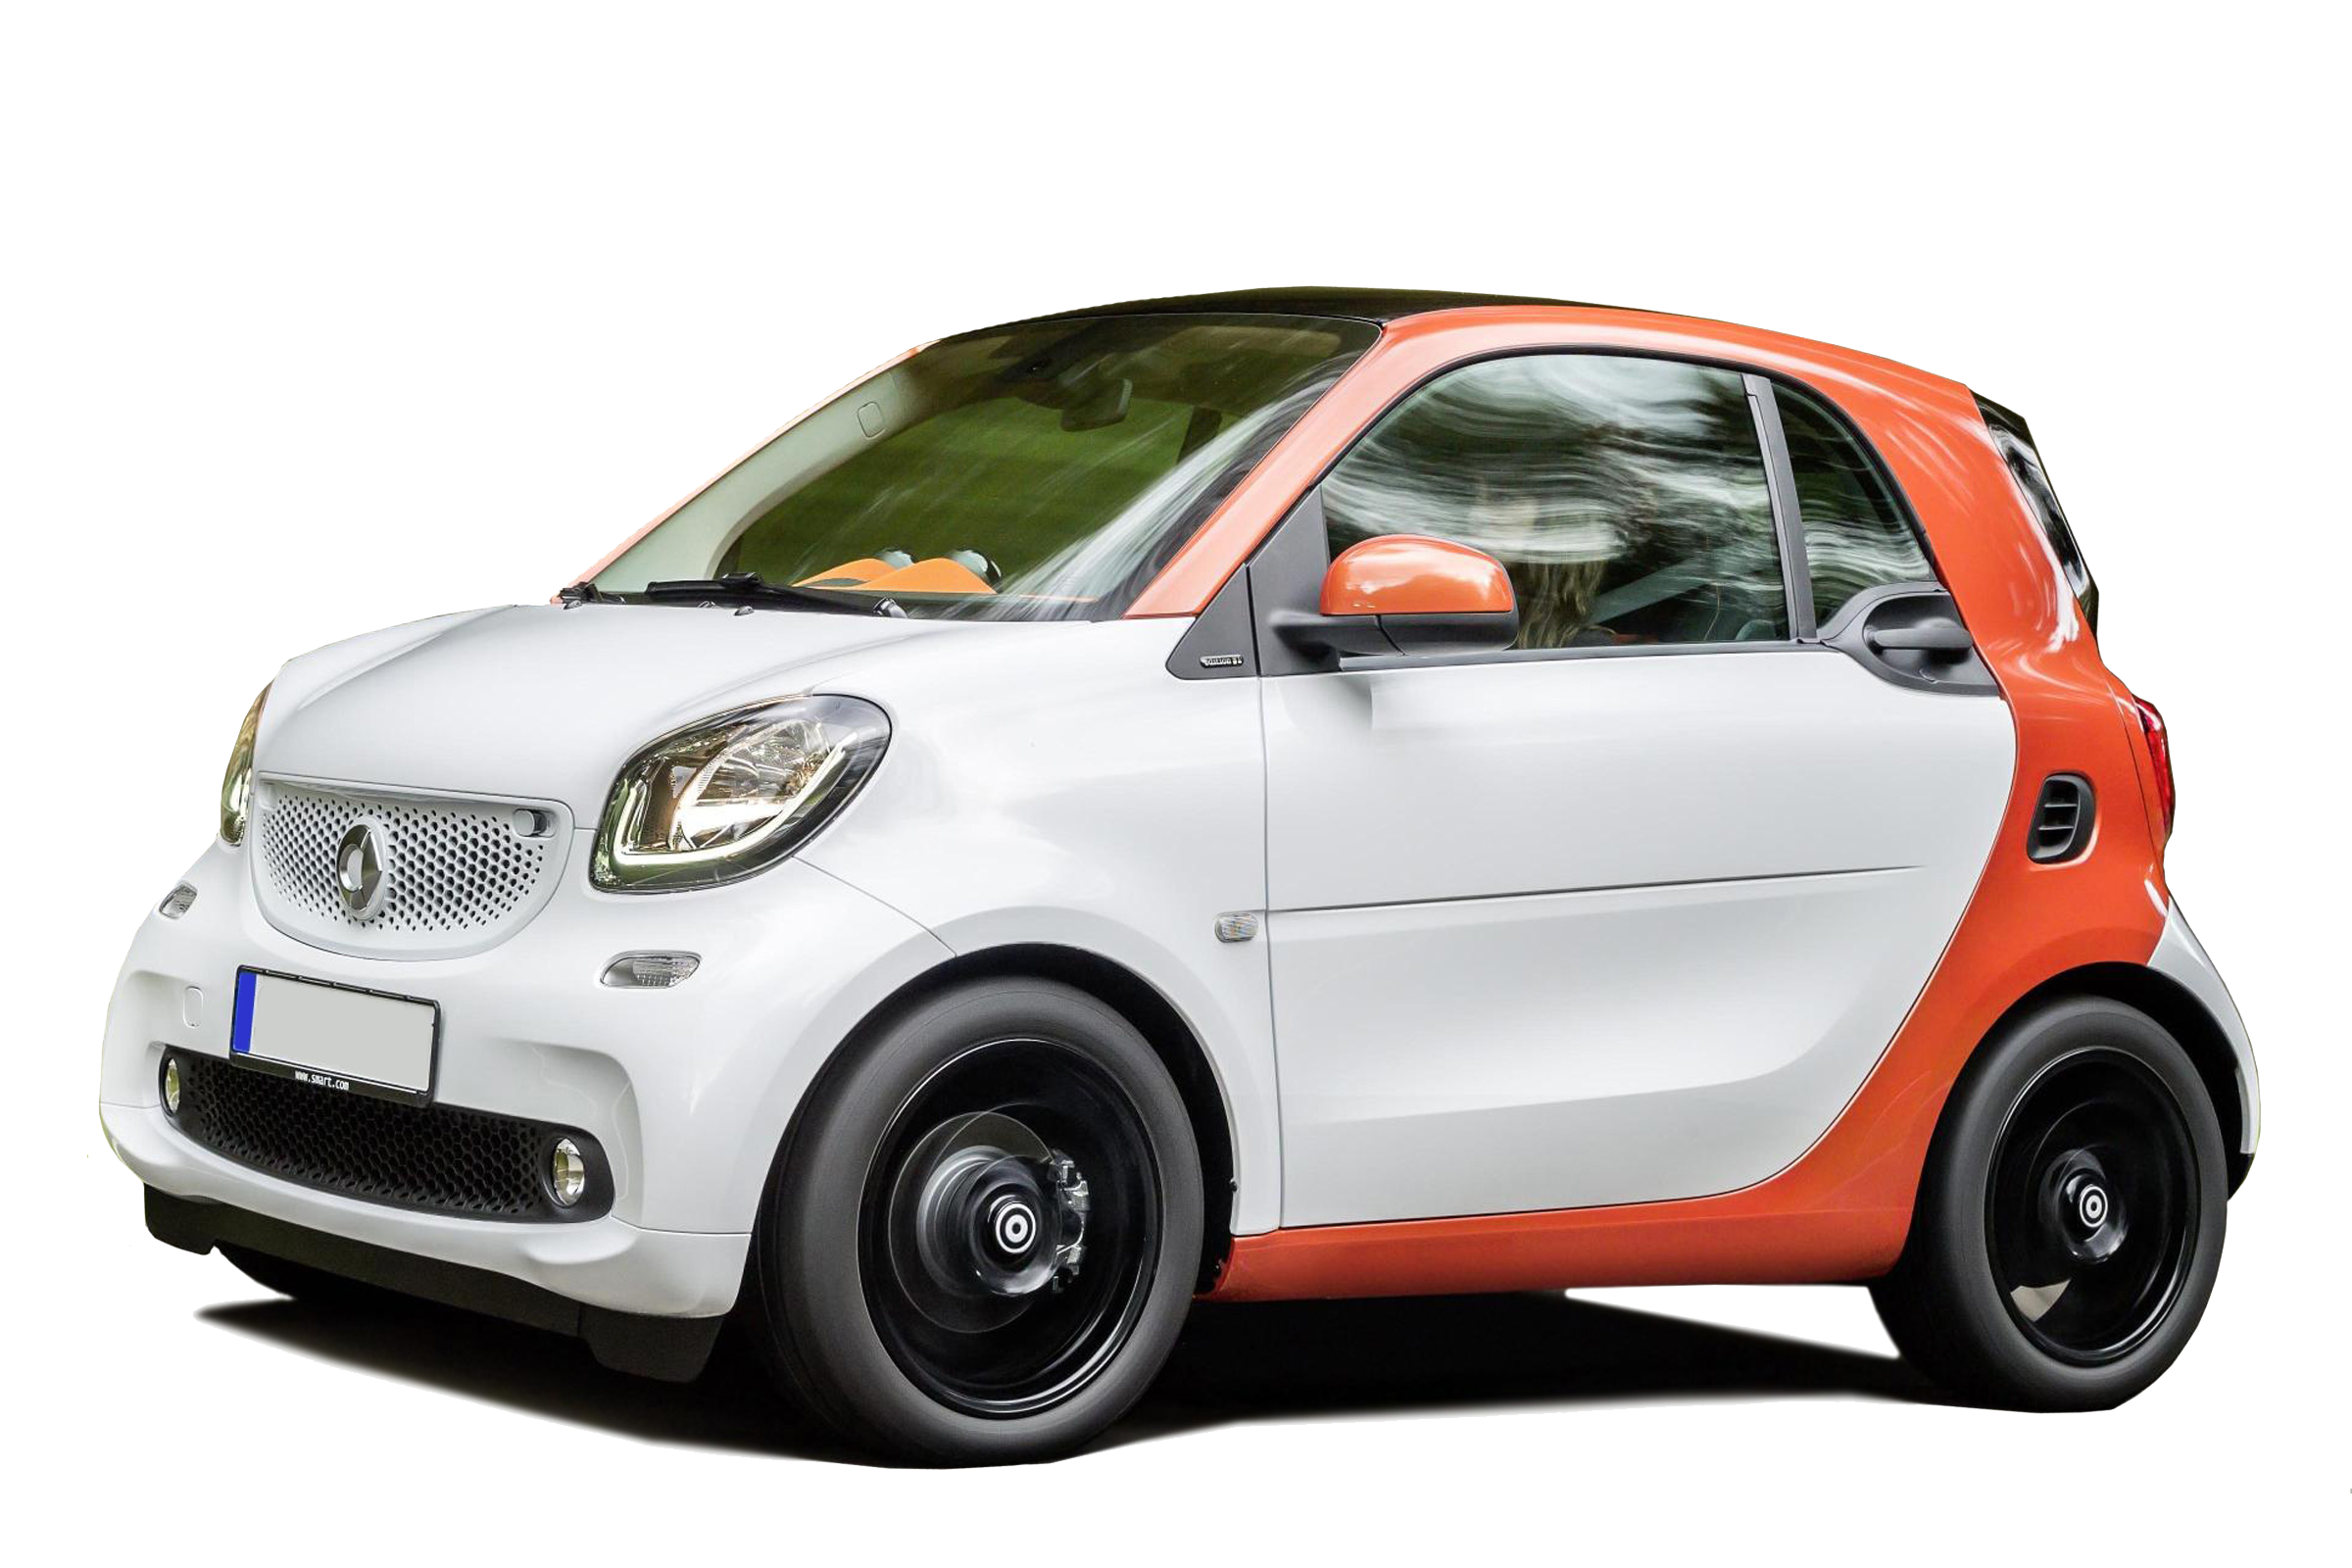 smart-fortwo-microcar-cutout.png